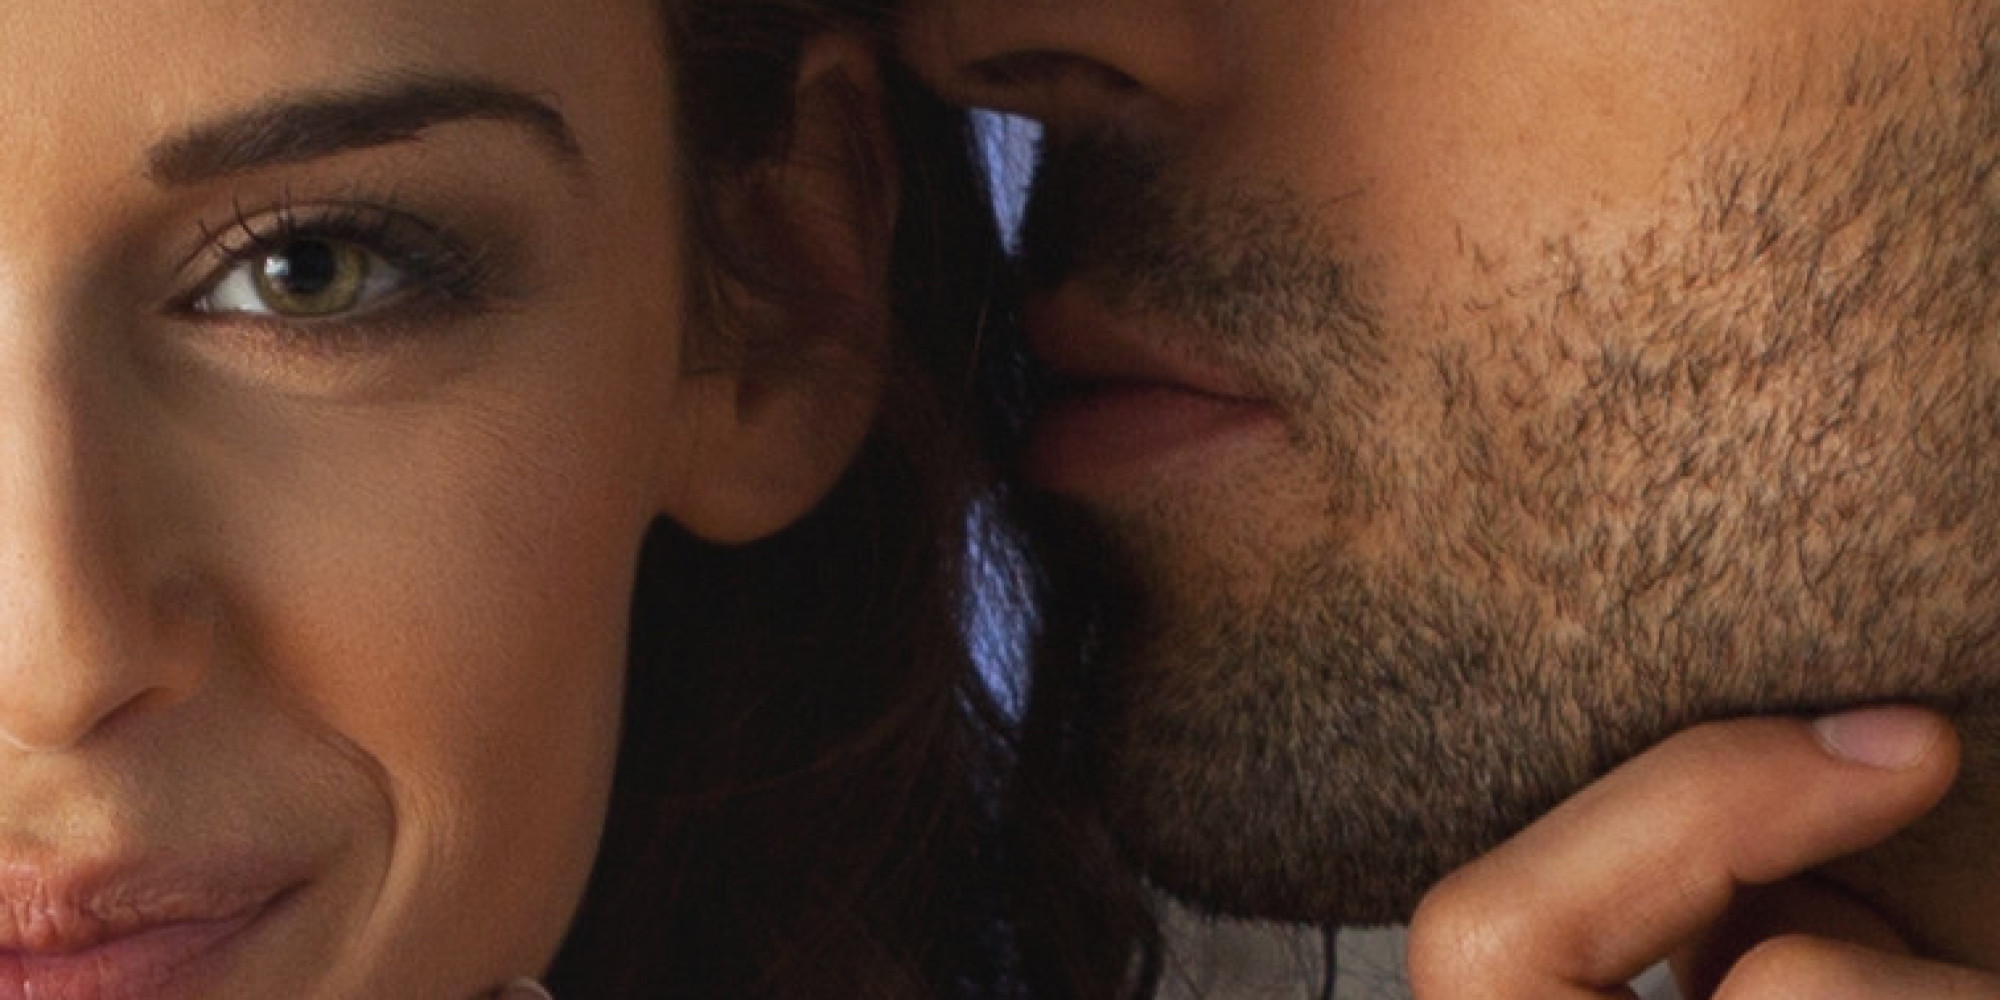 deepvoiced men are more attractive to women at least